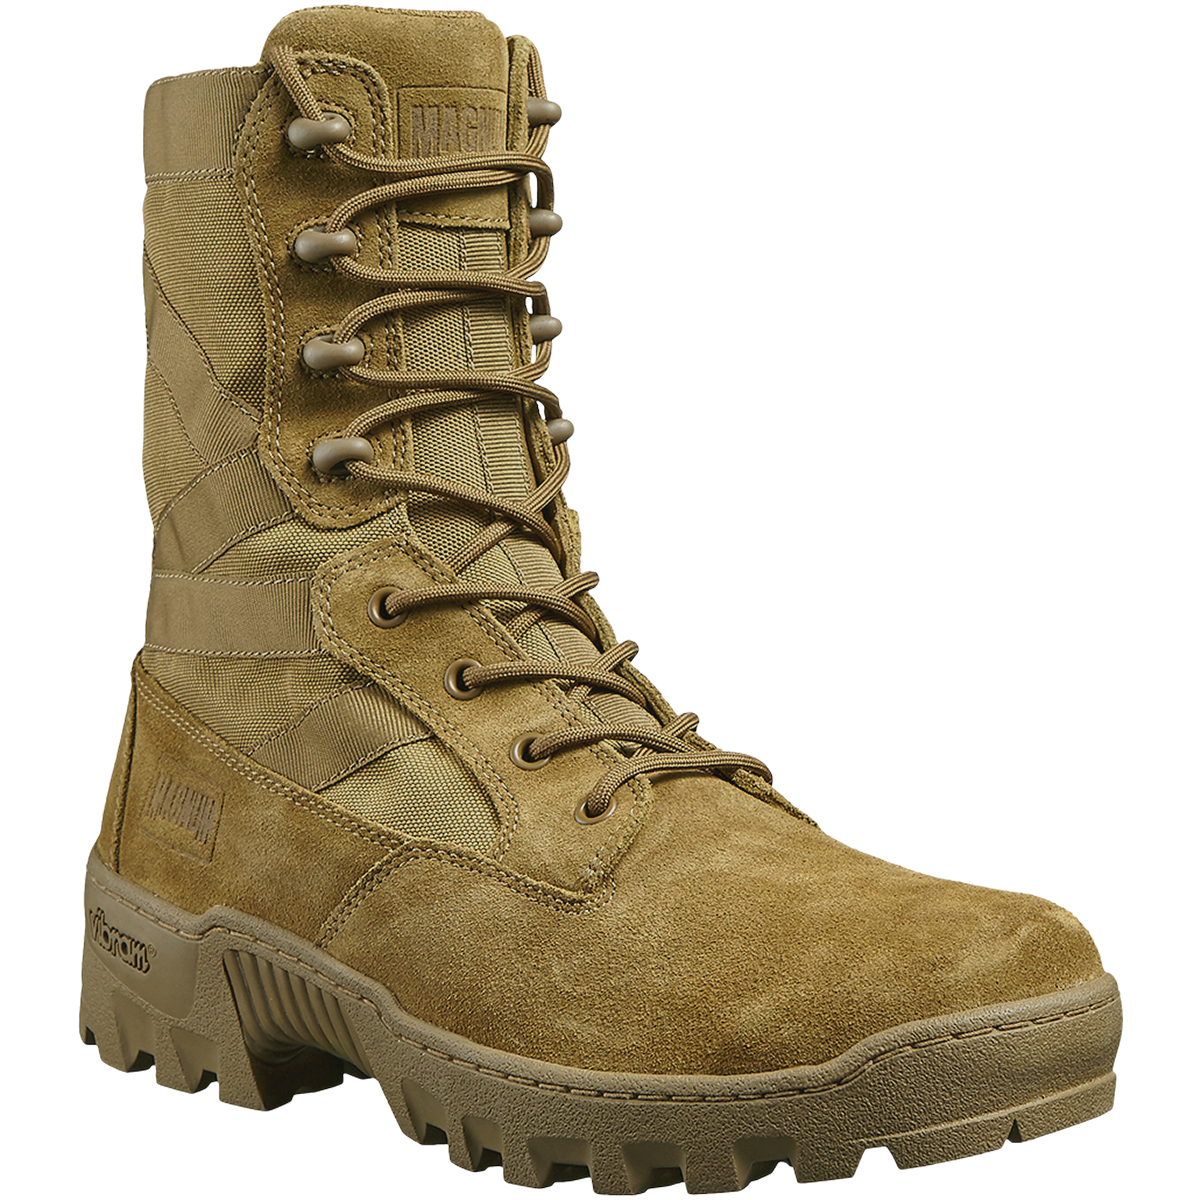 Magnum Panther 8 0 Side Zip Boots Army Military Patrol